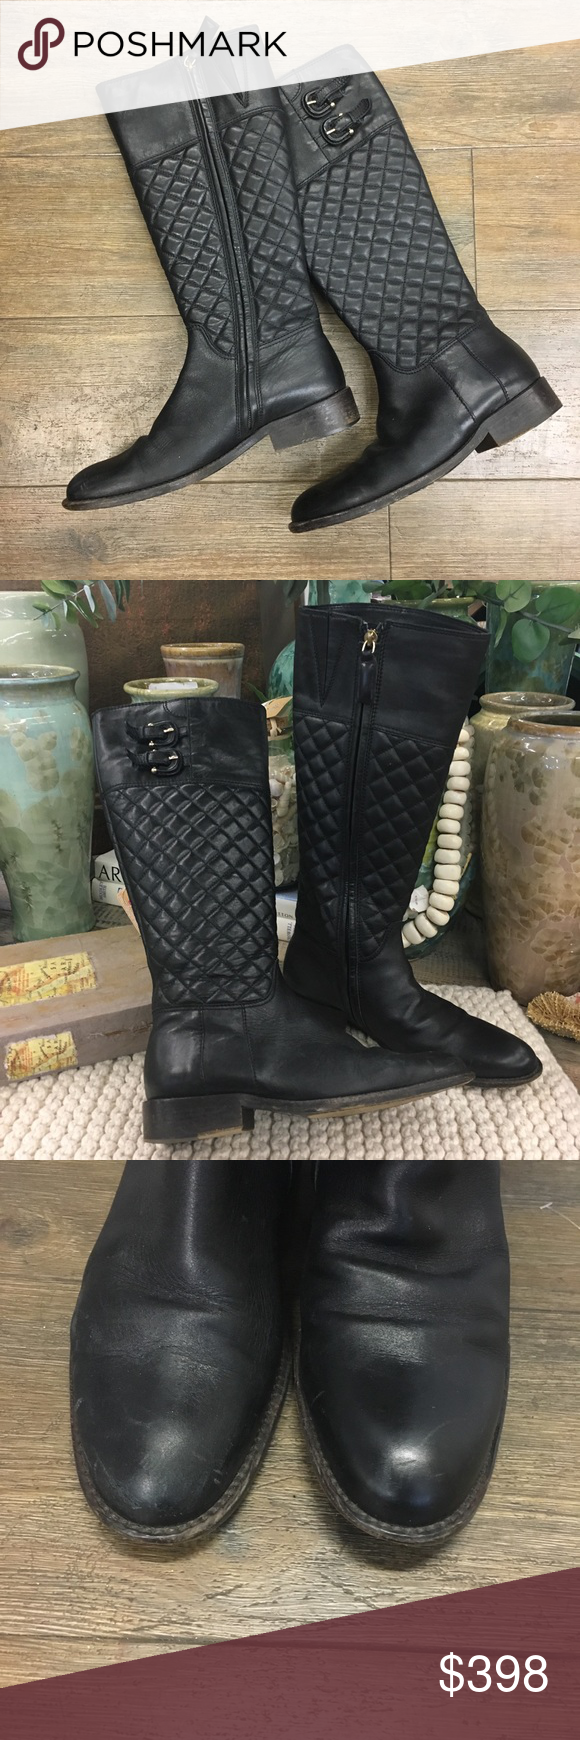 Burberry Black Leather Boots 35 5 Black Leather Boots Leather Boots Burberry Shoes